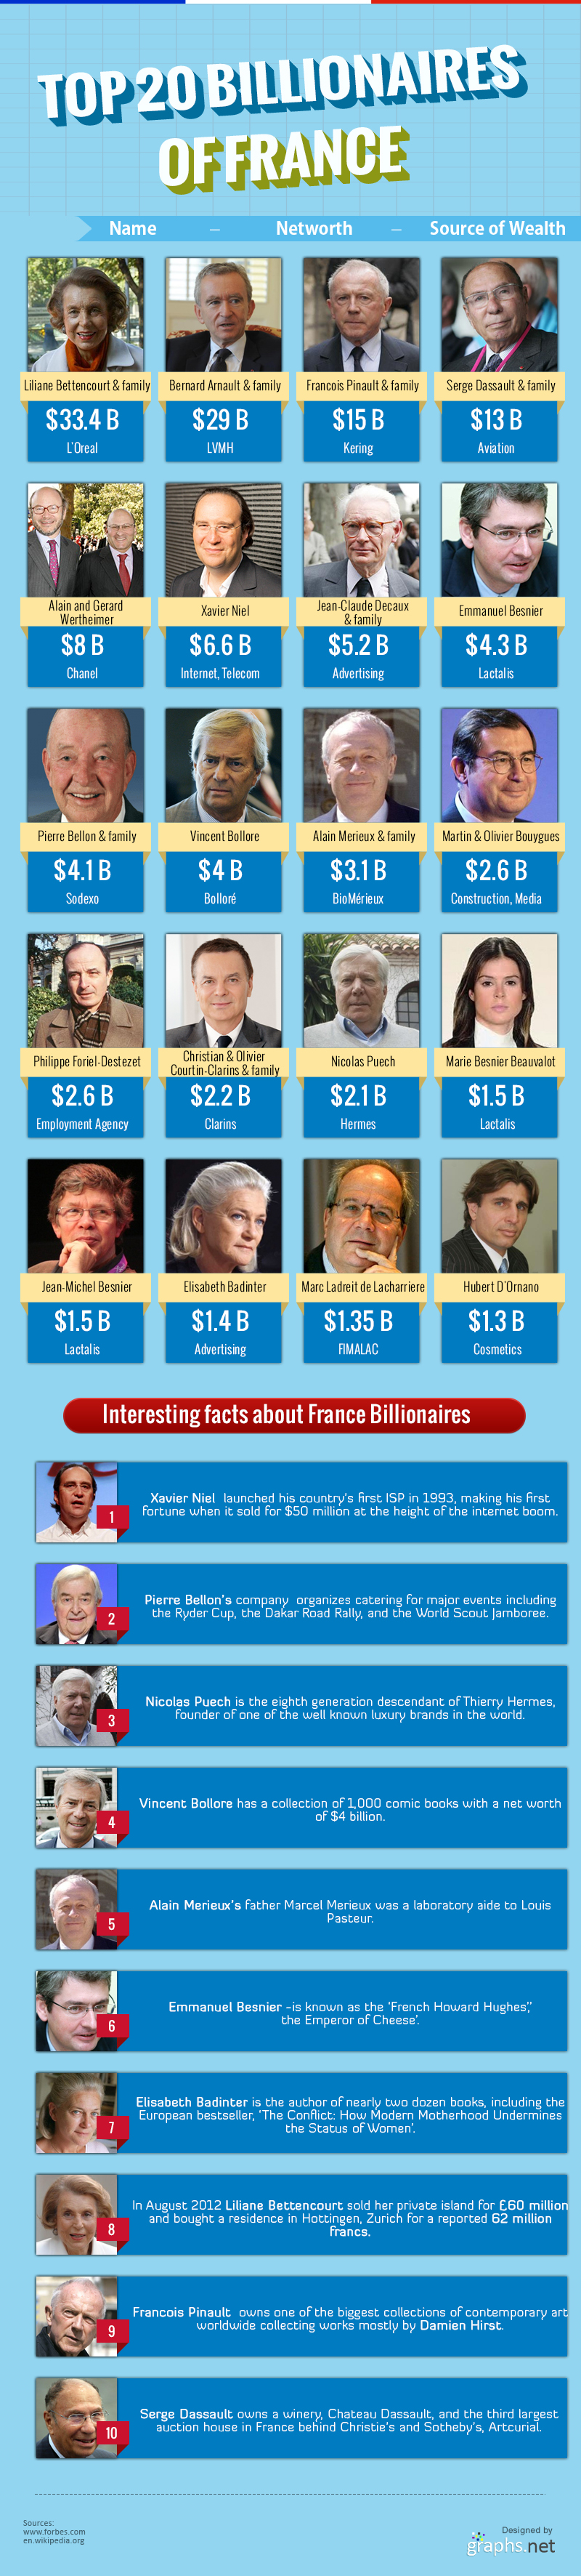 Top 20 billionaires of France